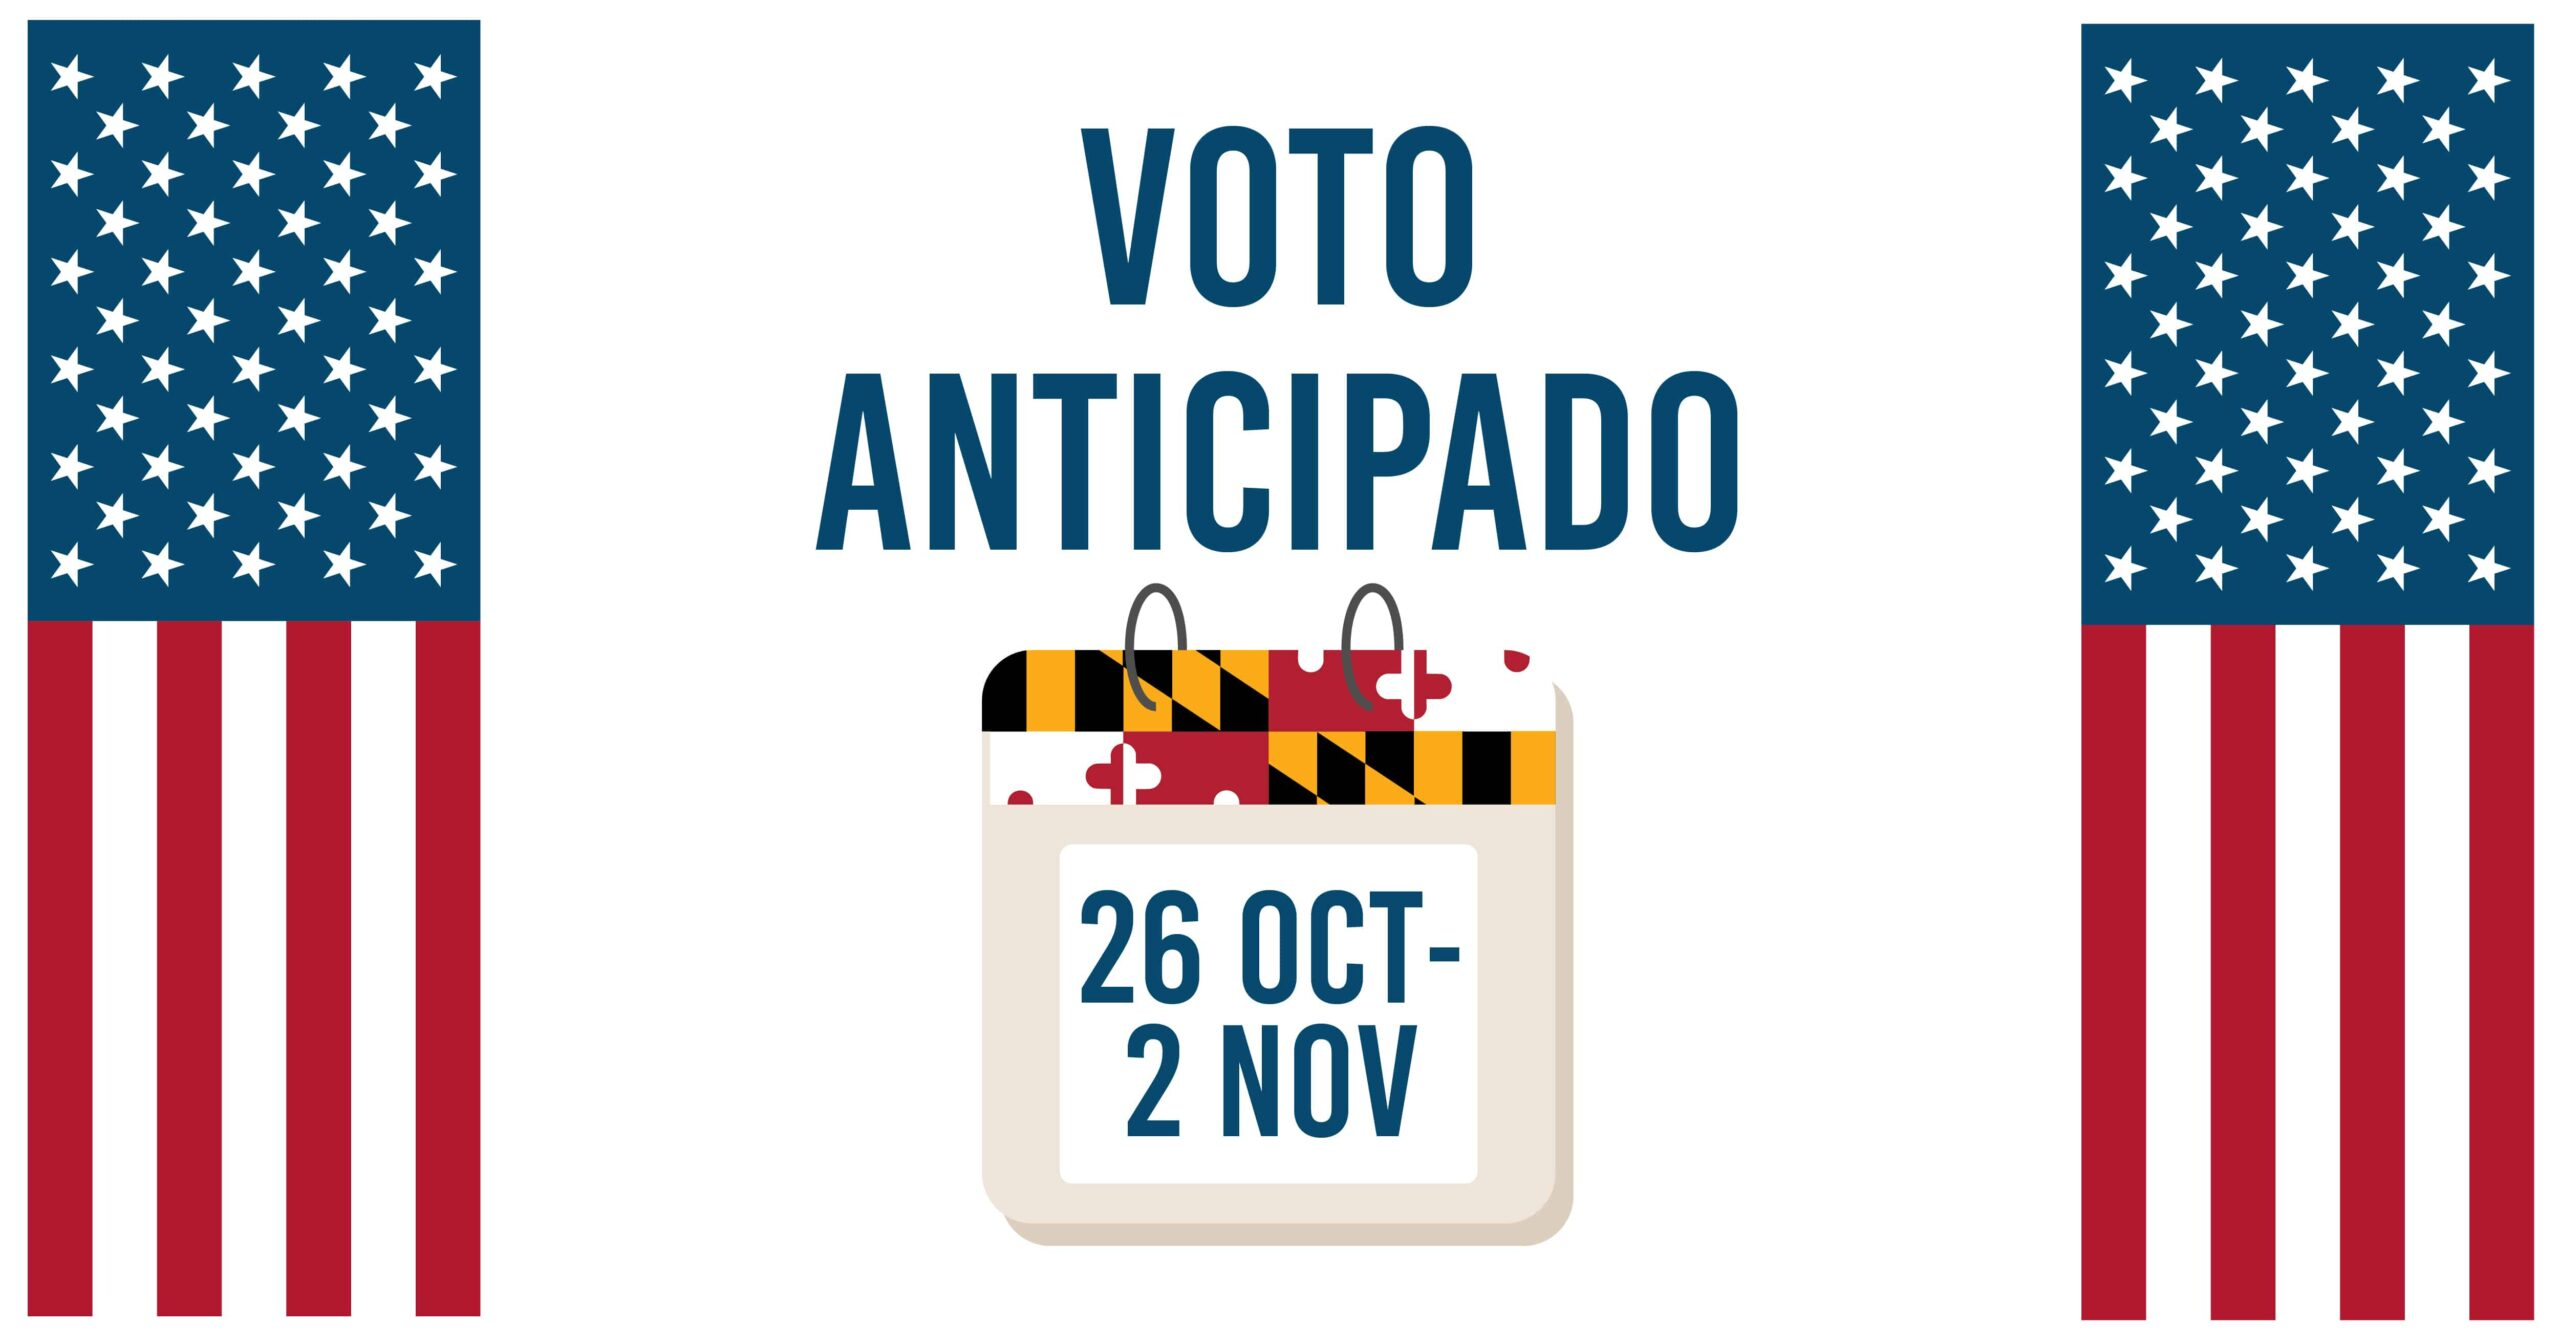 Voto anticipado en Maryland 2